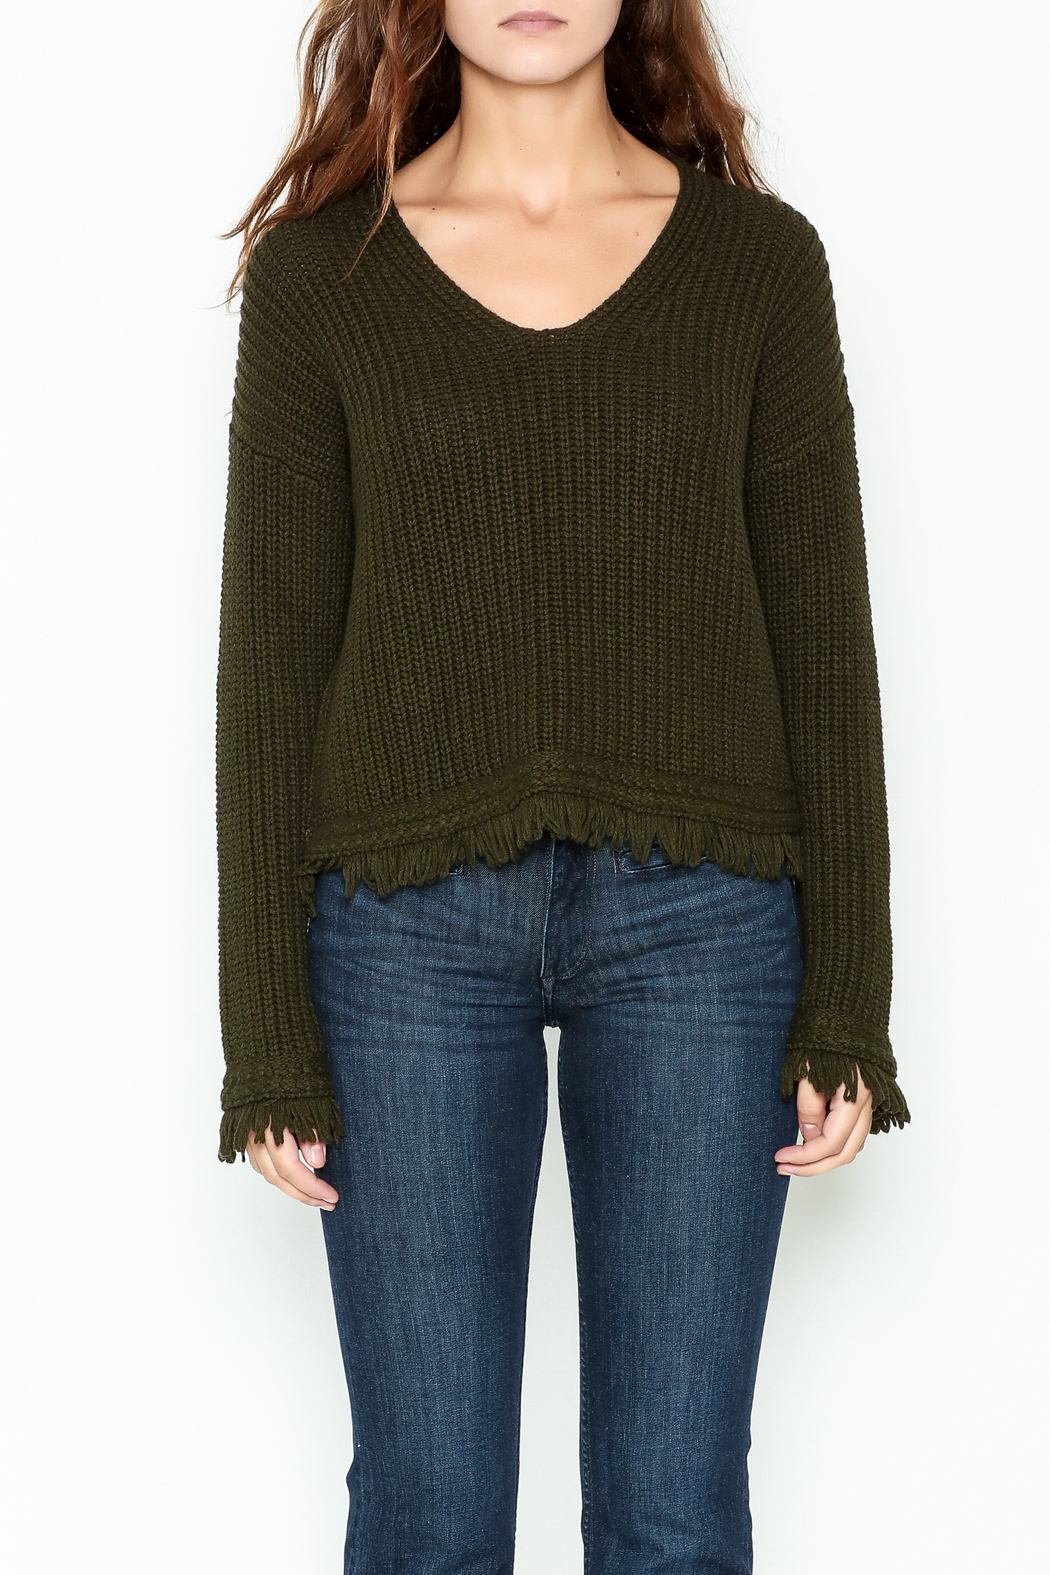 Margaret O'Leary Maeve Pullover Top - Front Full Image